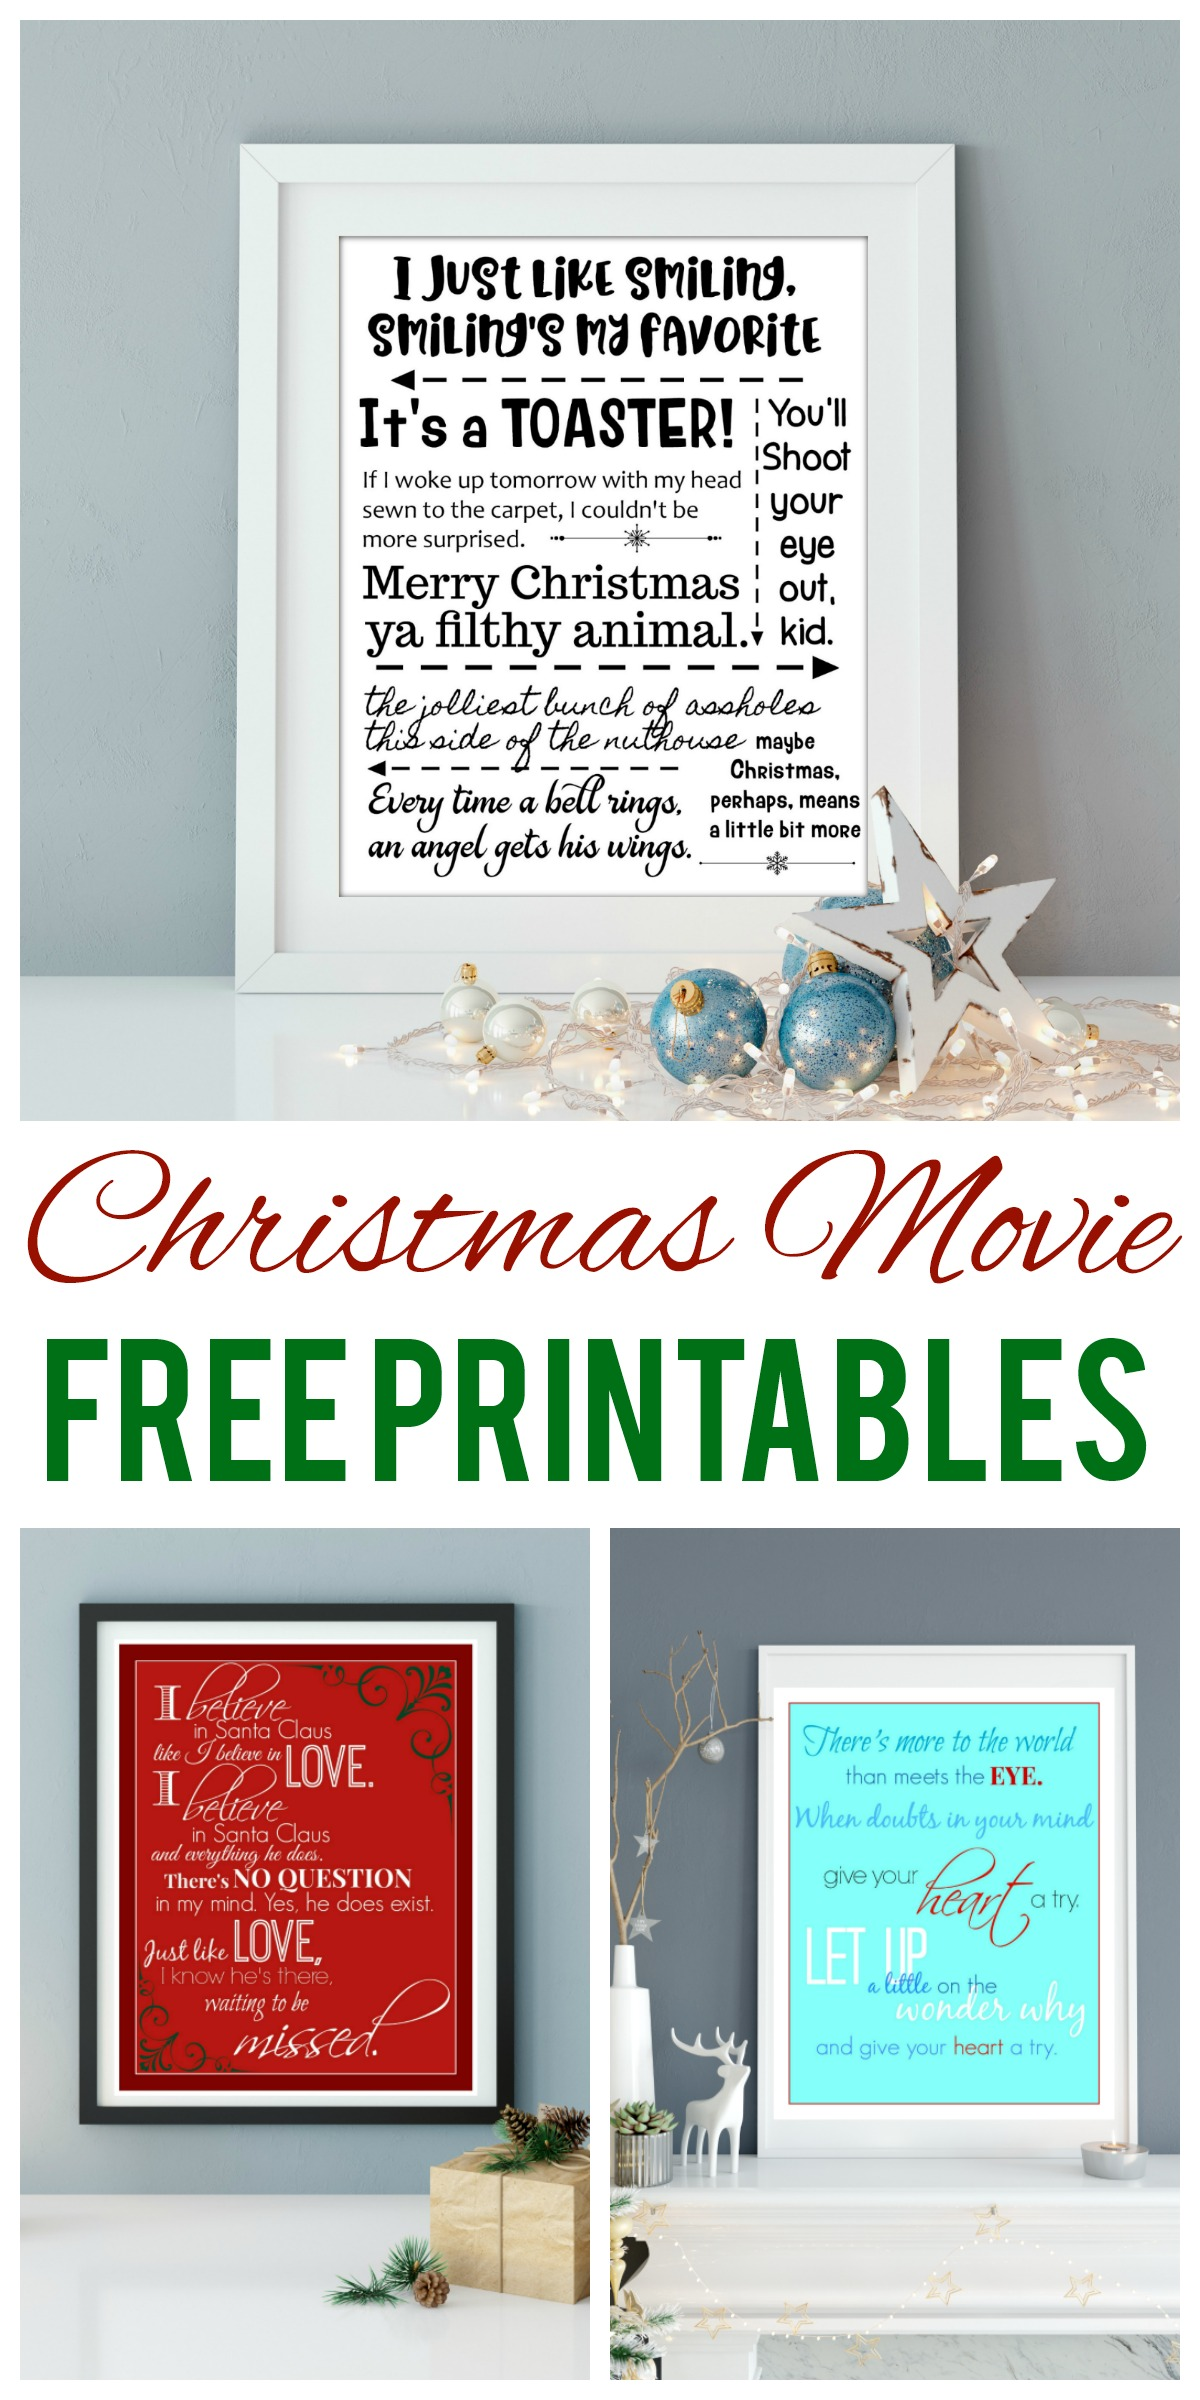 Christmas Movie Quotes Printables for True Believers